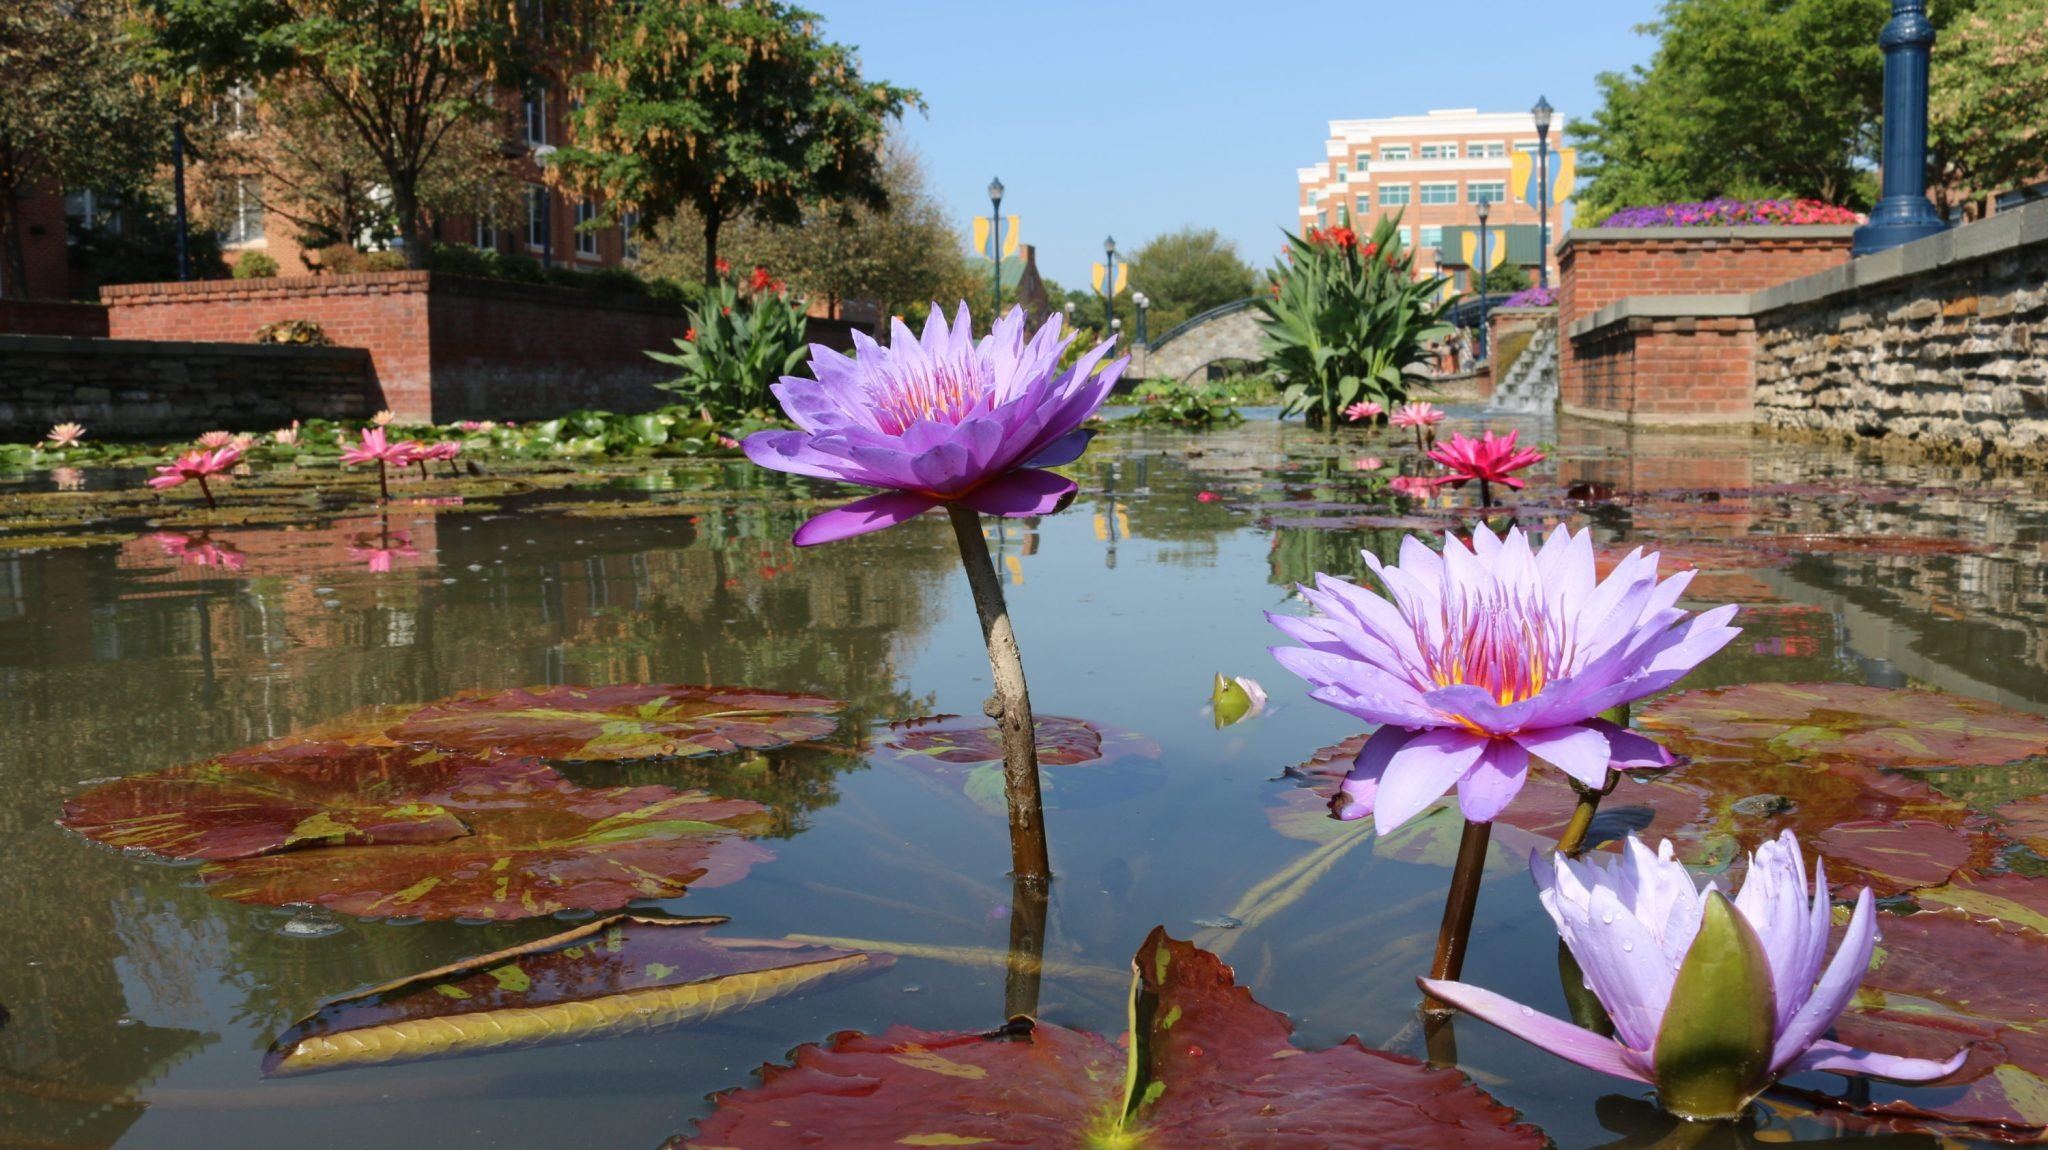 Check out this amazing water garden washingtonian are you a fan of monets water lily paintings then consider cruising up to frederick maryland this weekend to see a similarly dreamy tableau with your izmirmasajfo